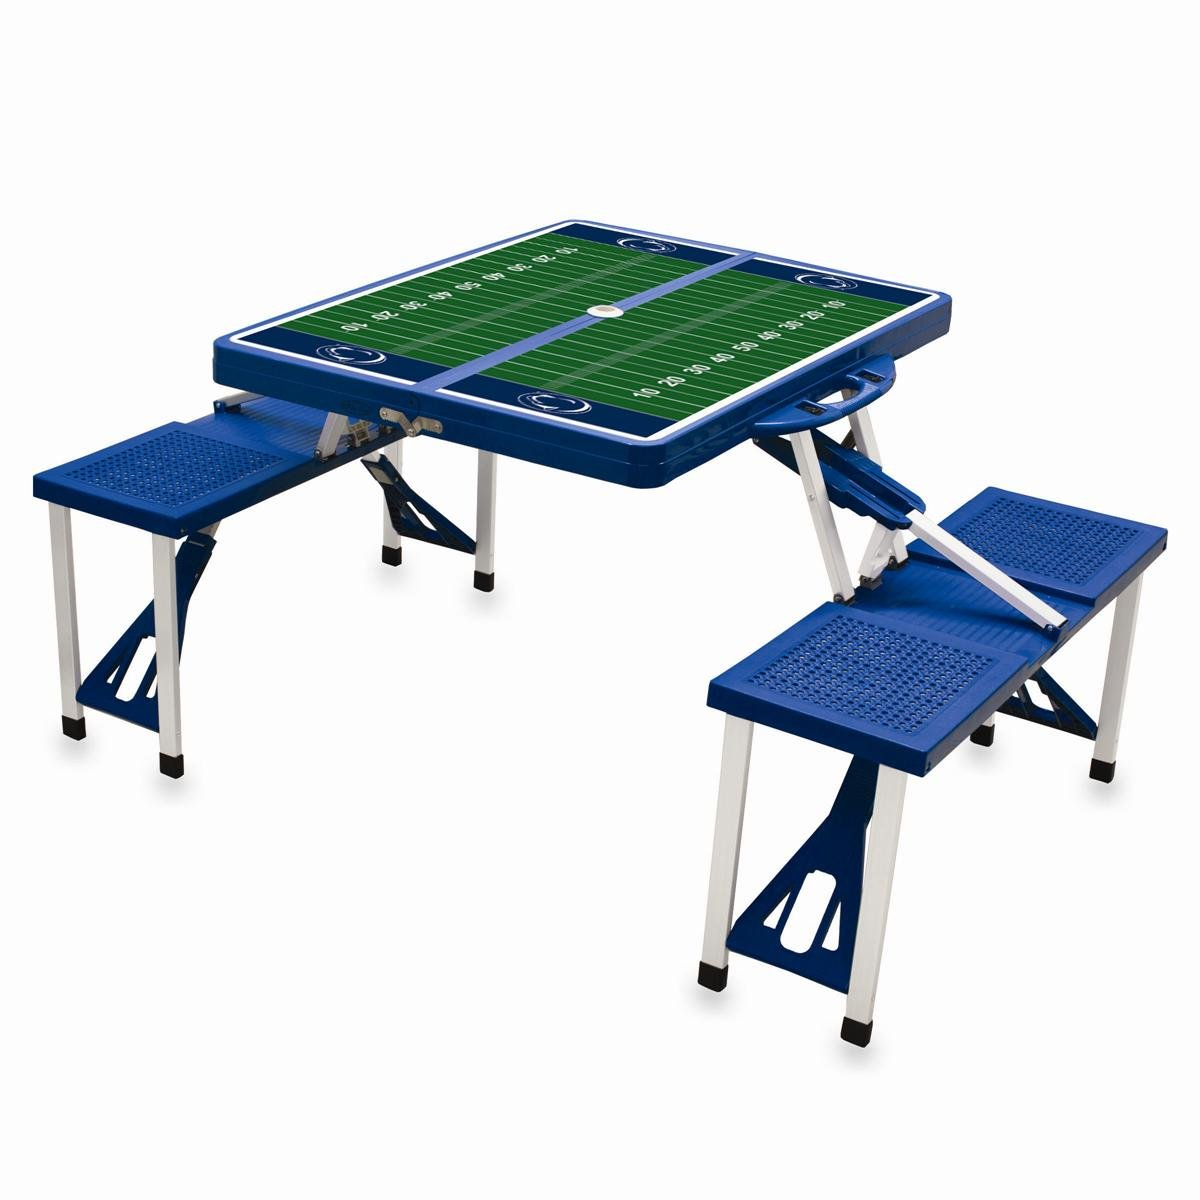 NCAA Penn State Nittany Lions Digital Print Picnic Table Sport, Blue, One Size